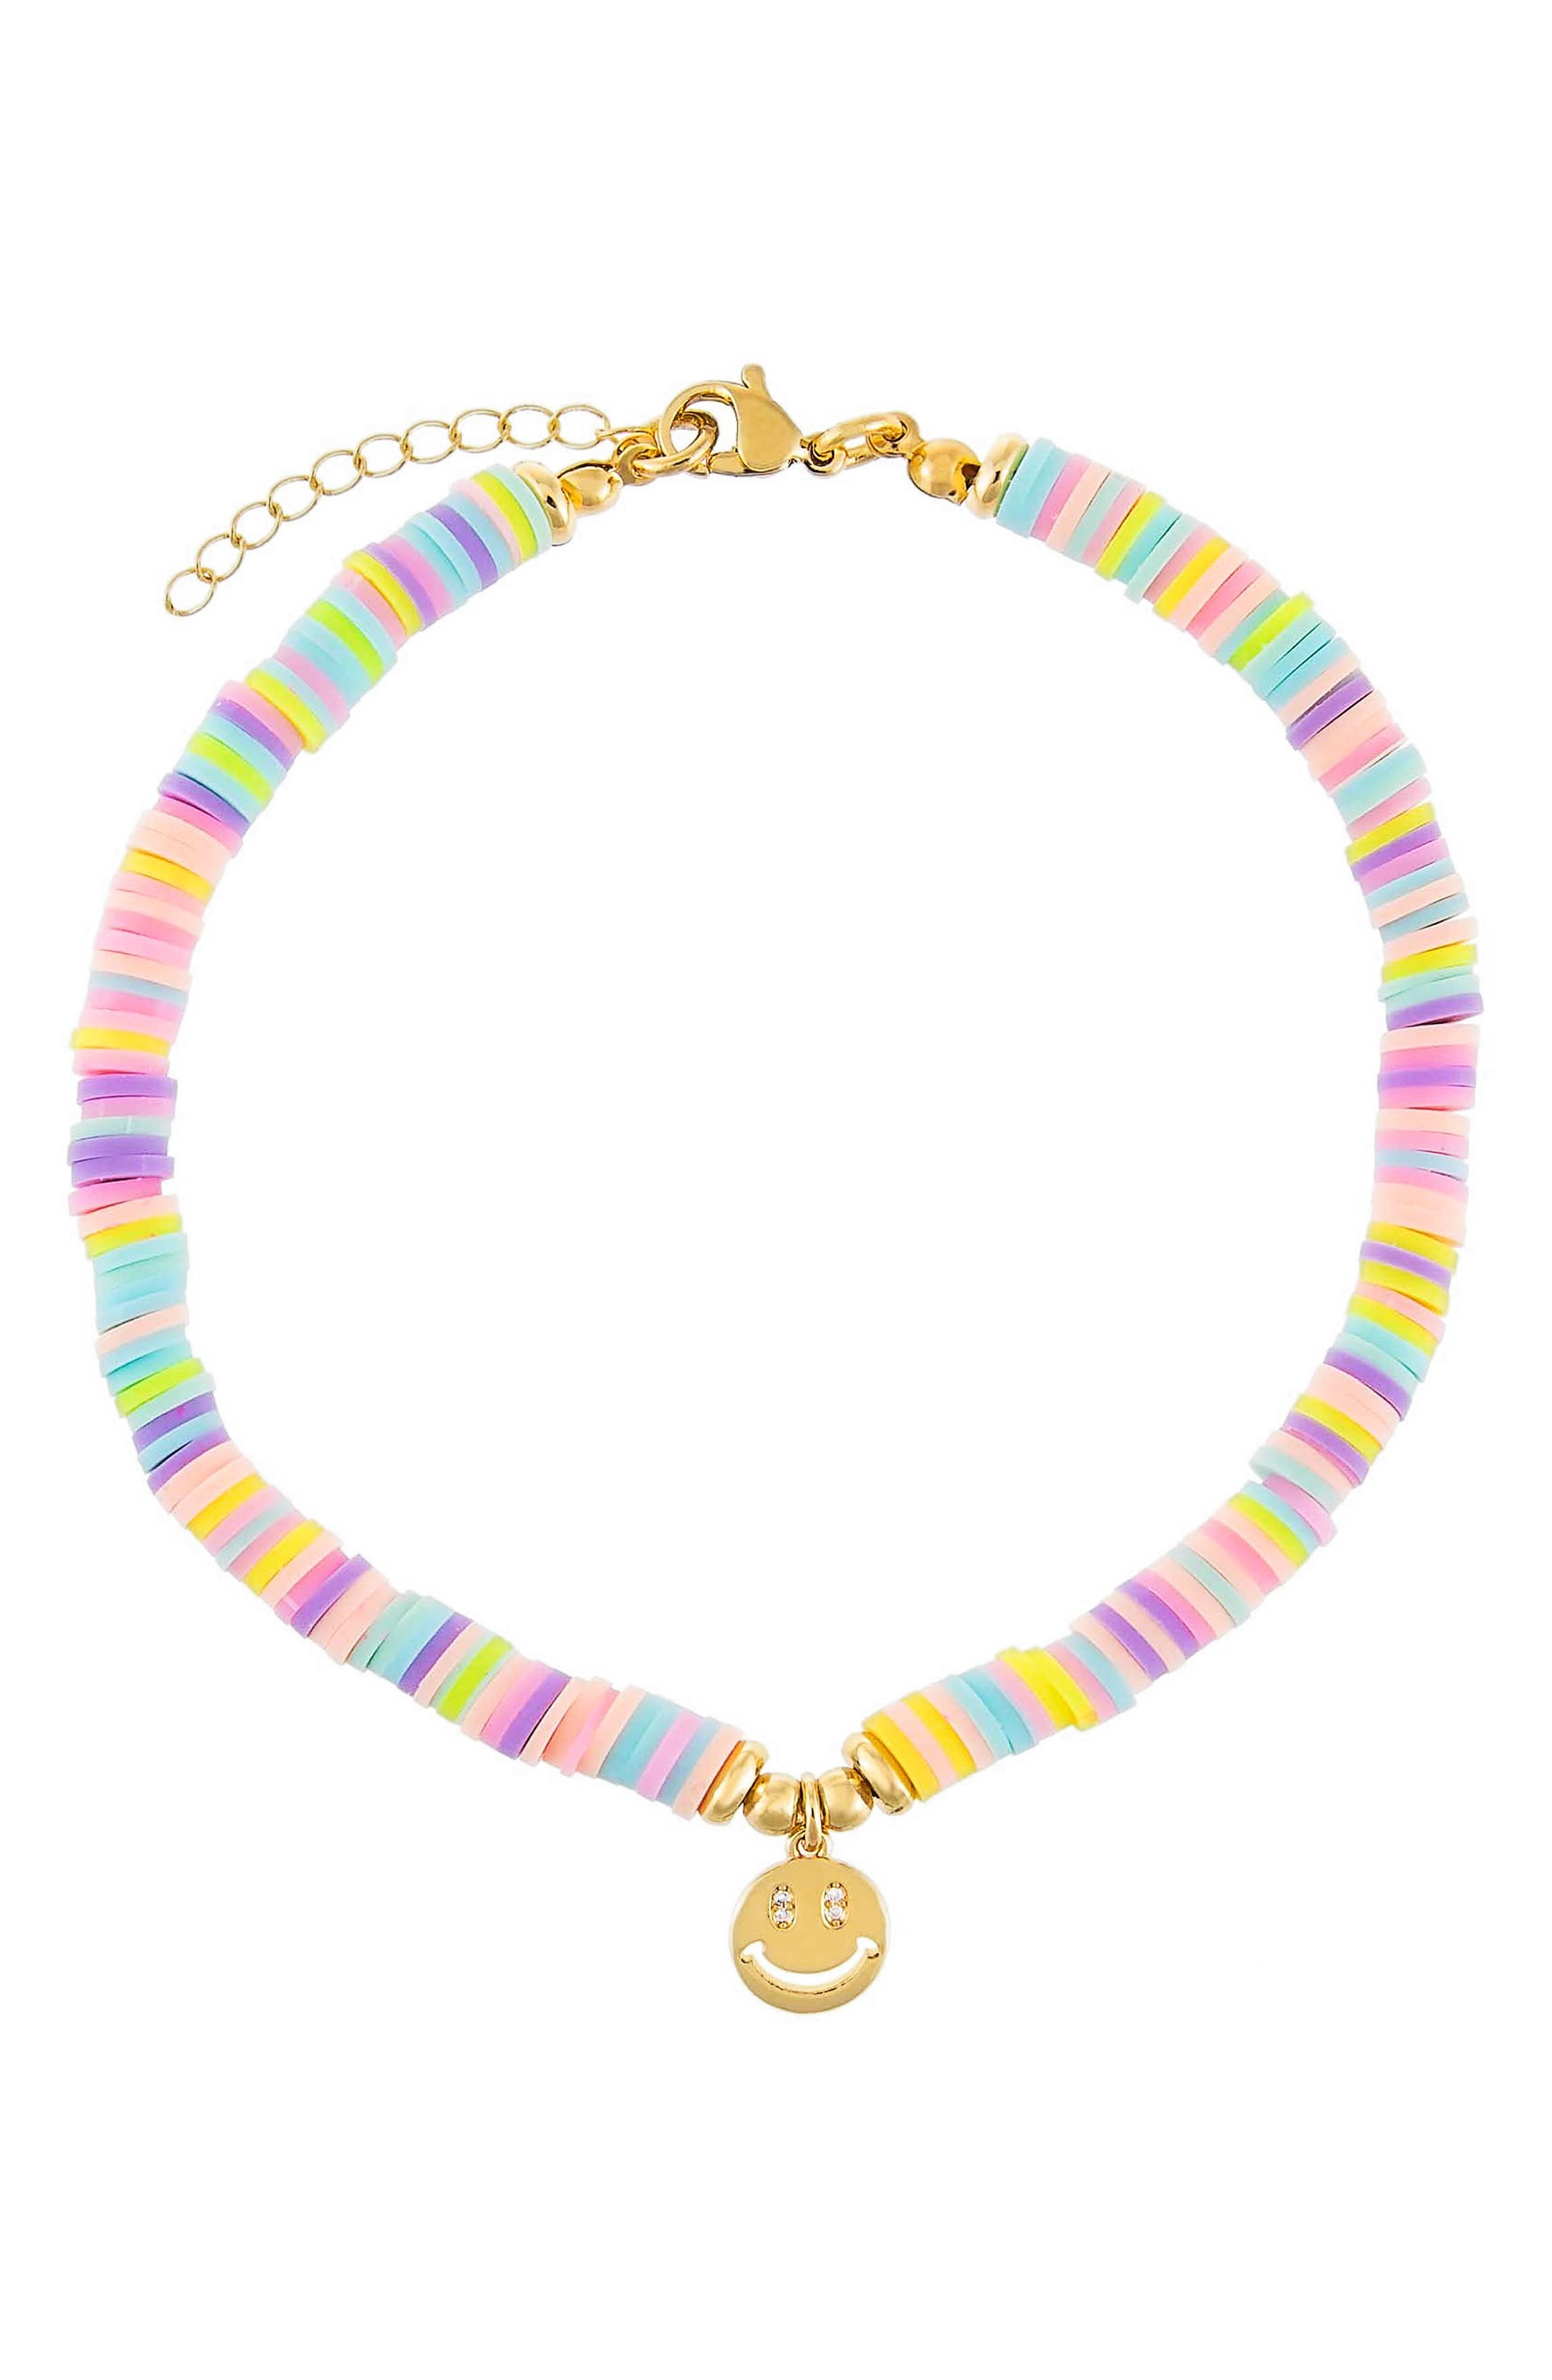 Women's Adina's Jewels Pastel Beaded Smiley Face Pendant Anklet